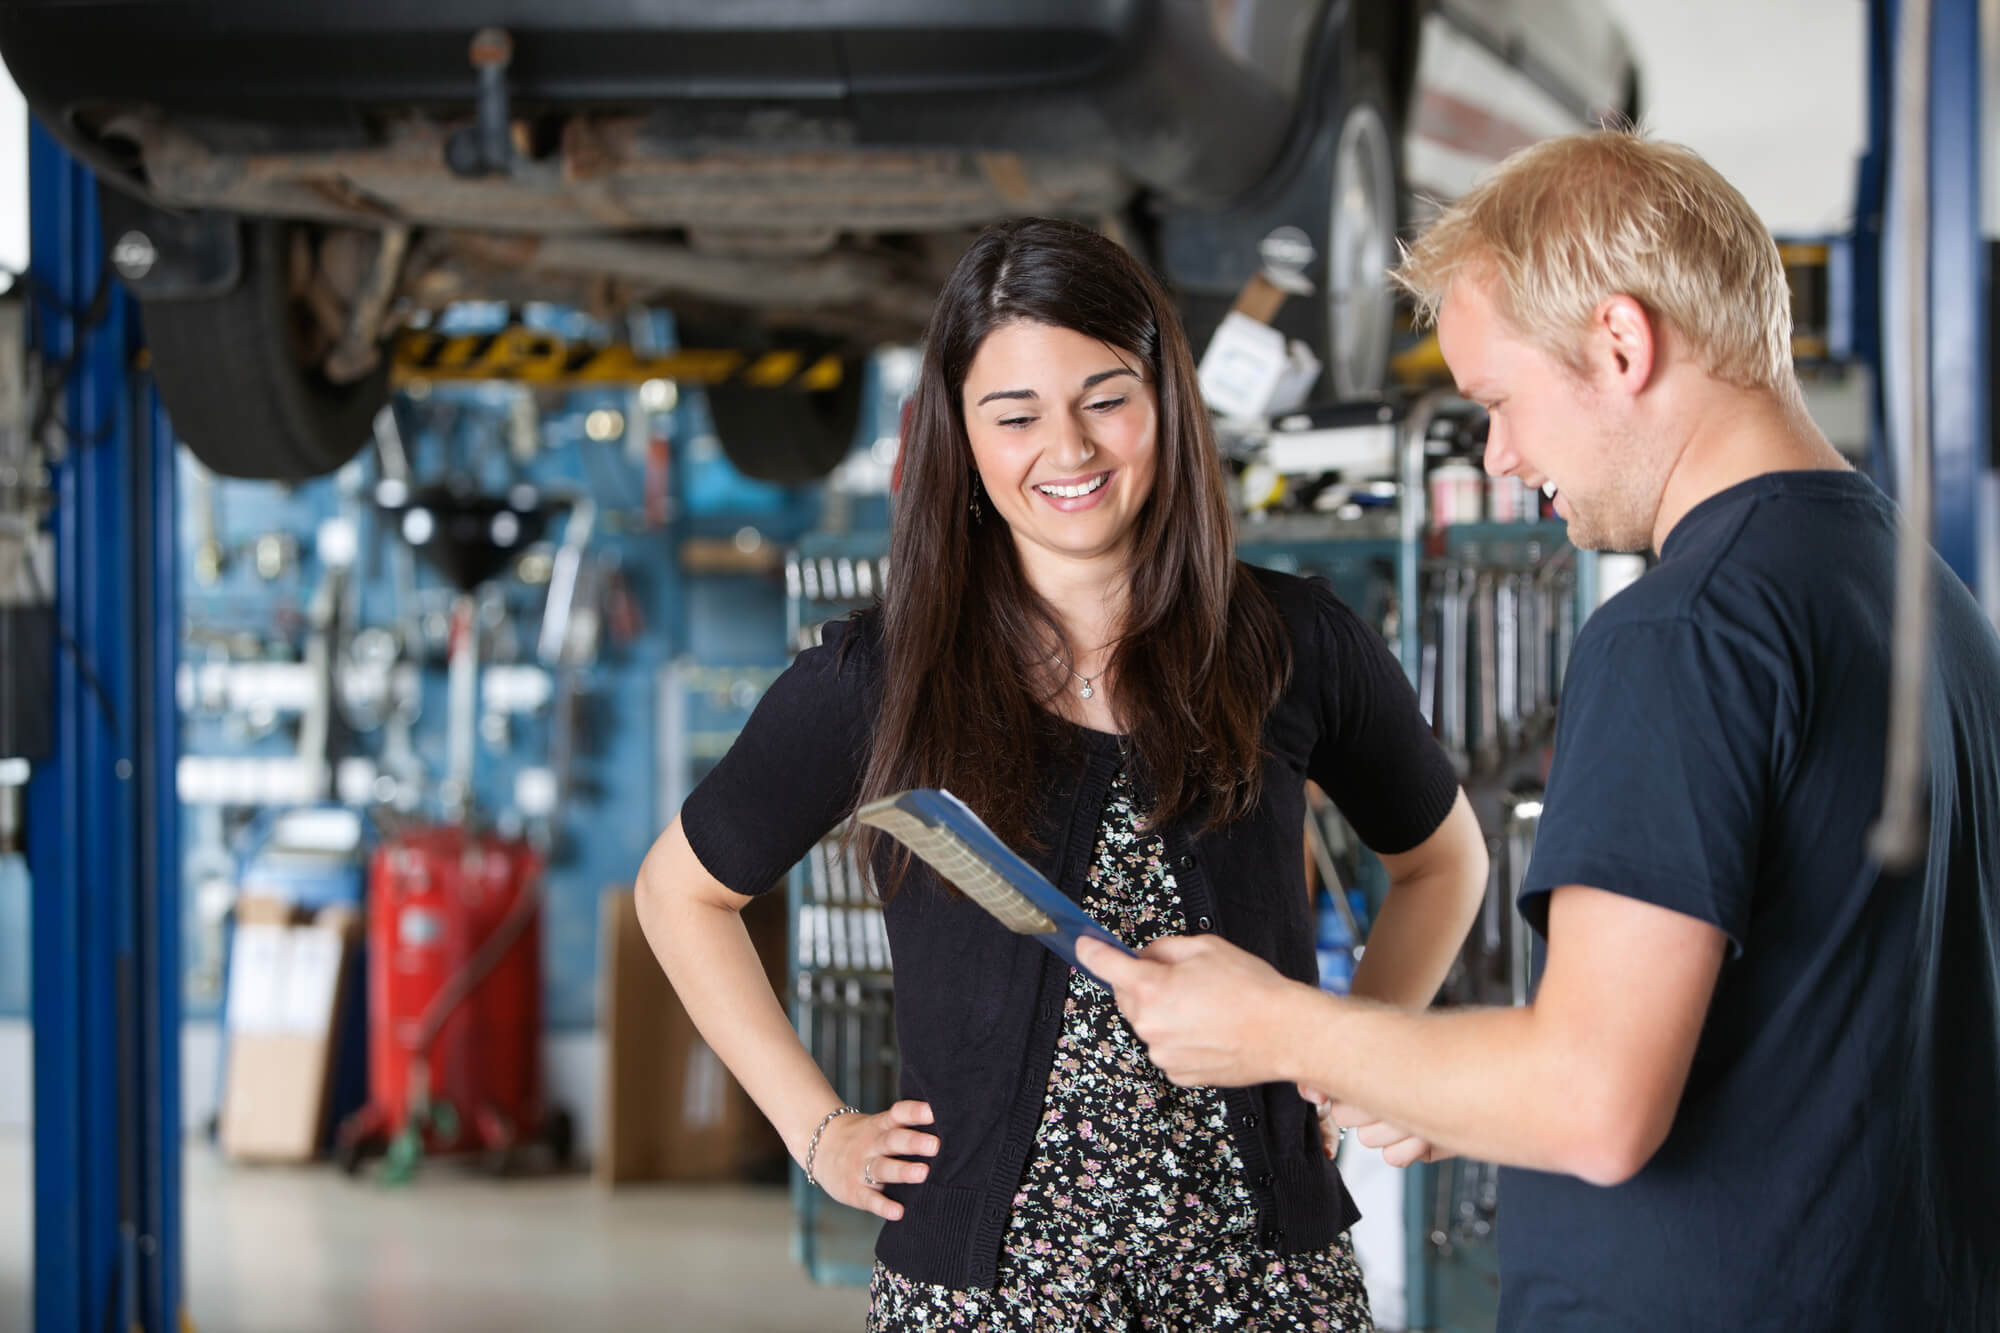 mechanic is talking to a female customer